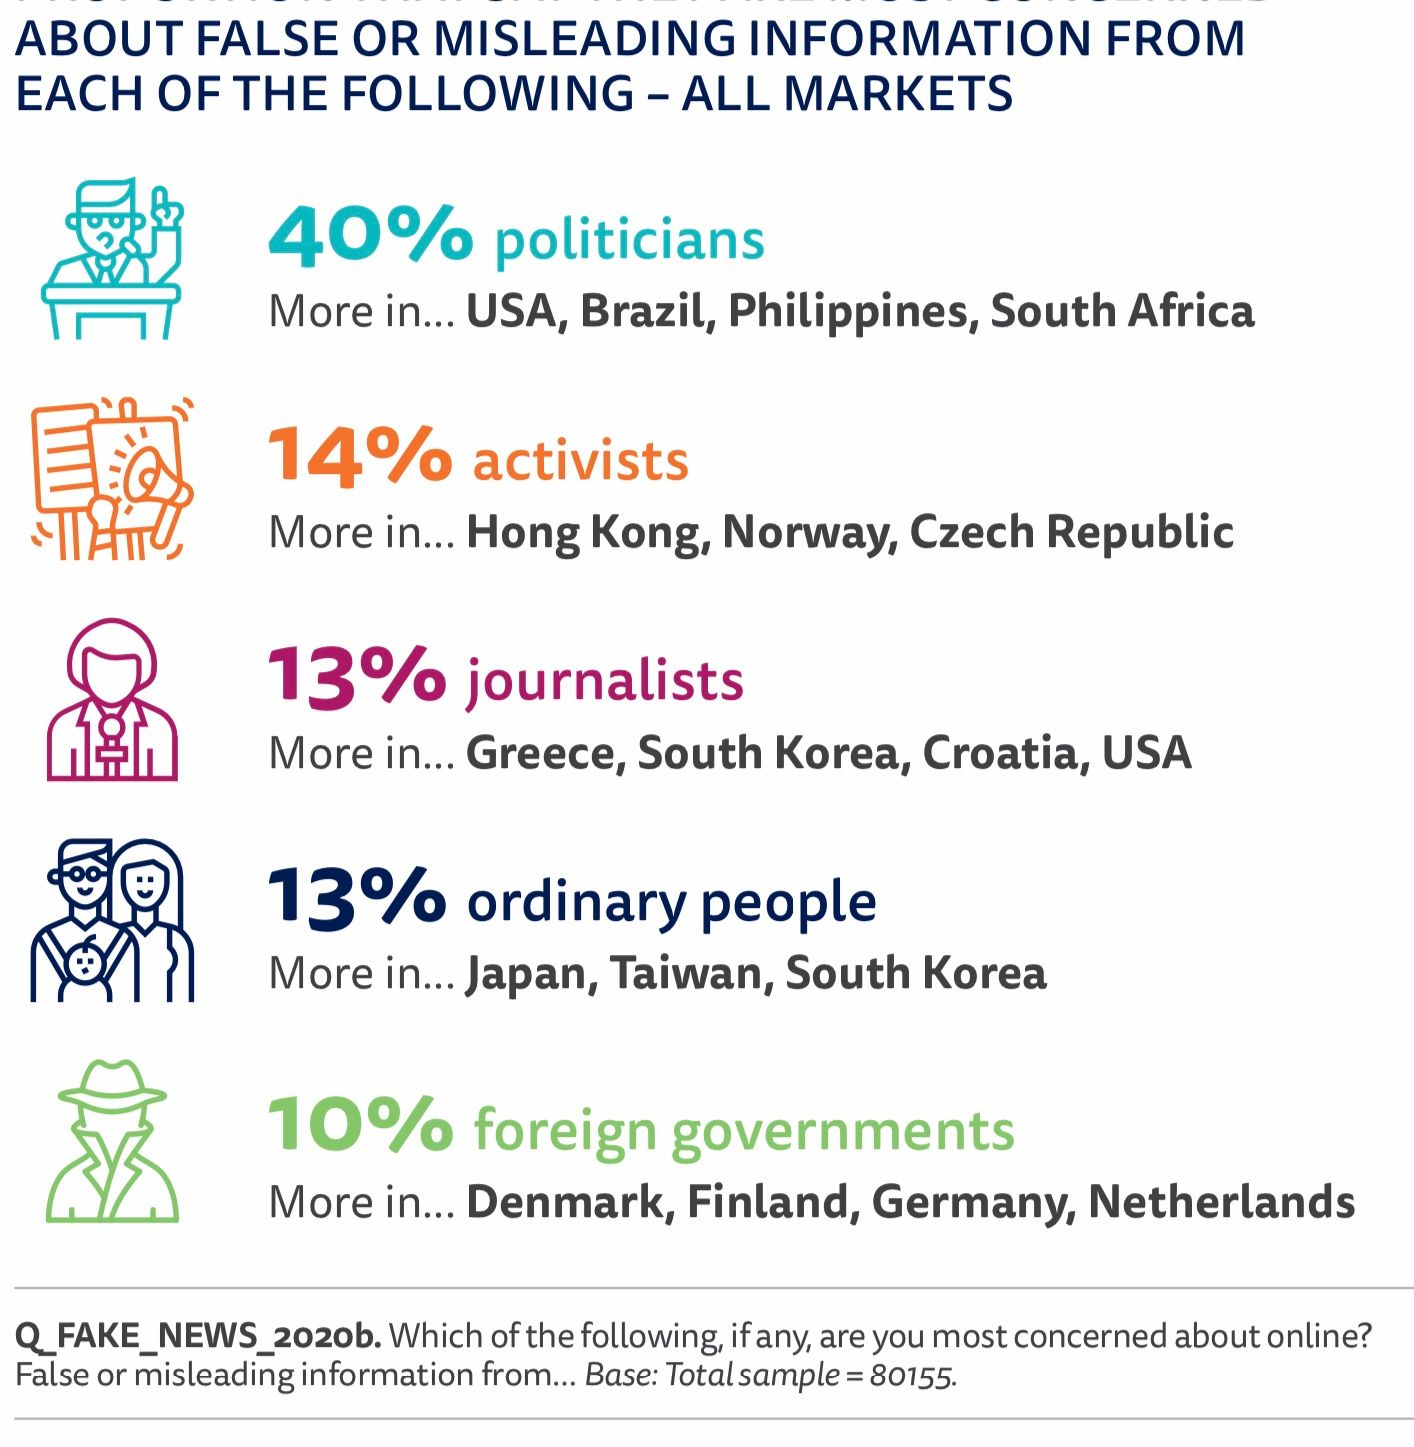 People's perception of sources of misinformation from the Digital News Report 2020